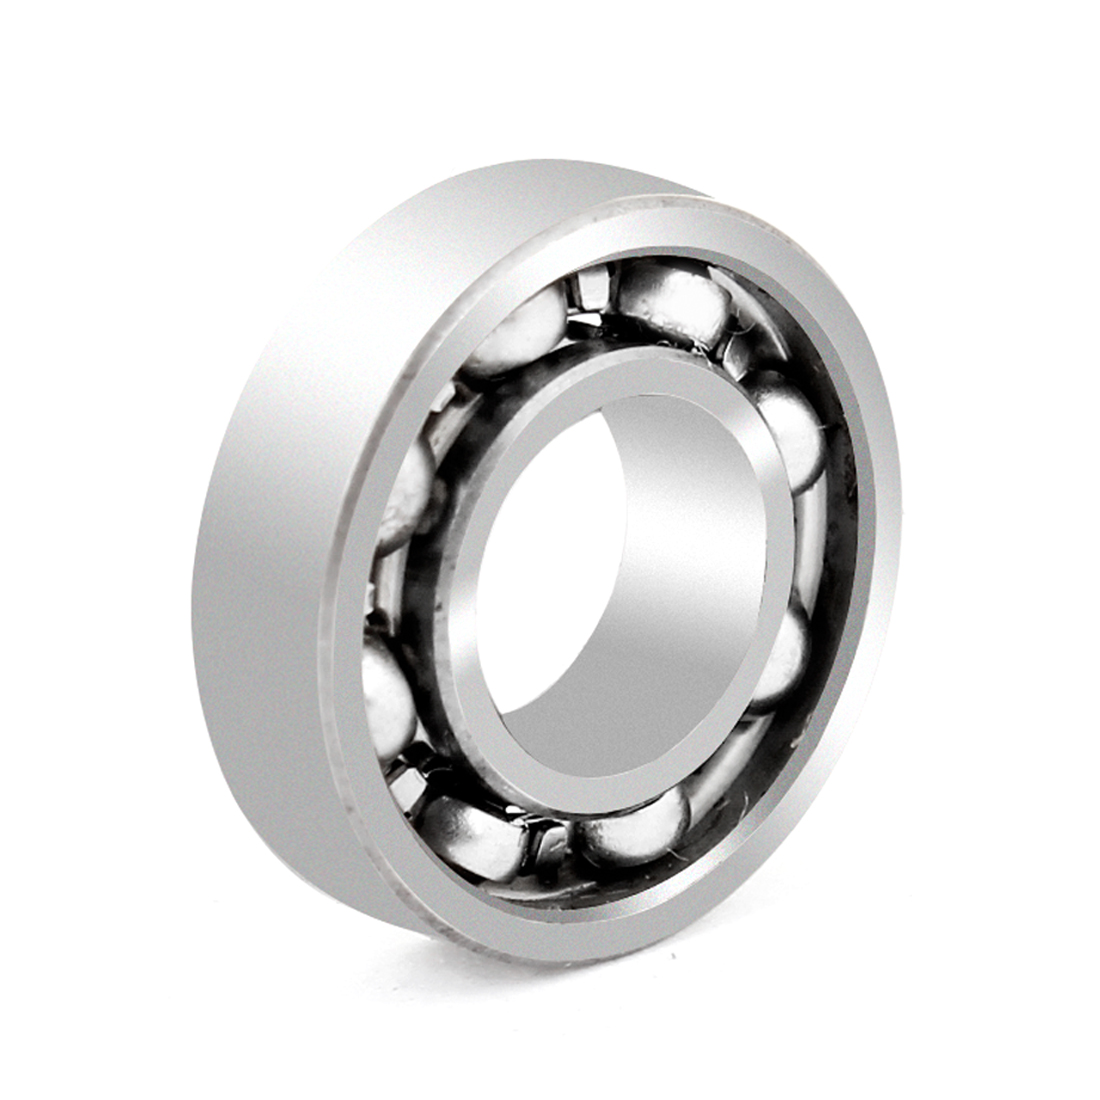 13mm x 6mm x 3.5mm Deep Groove Ball Bearing Silver Tone for Electric Hammer